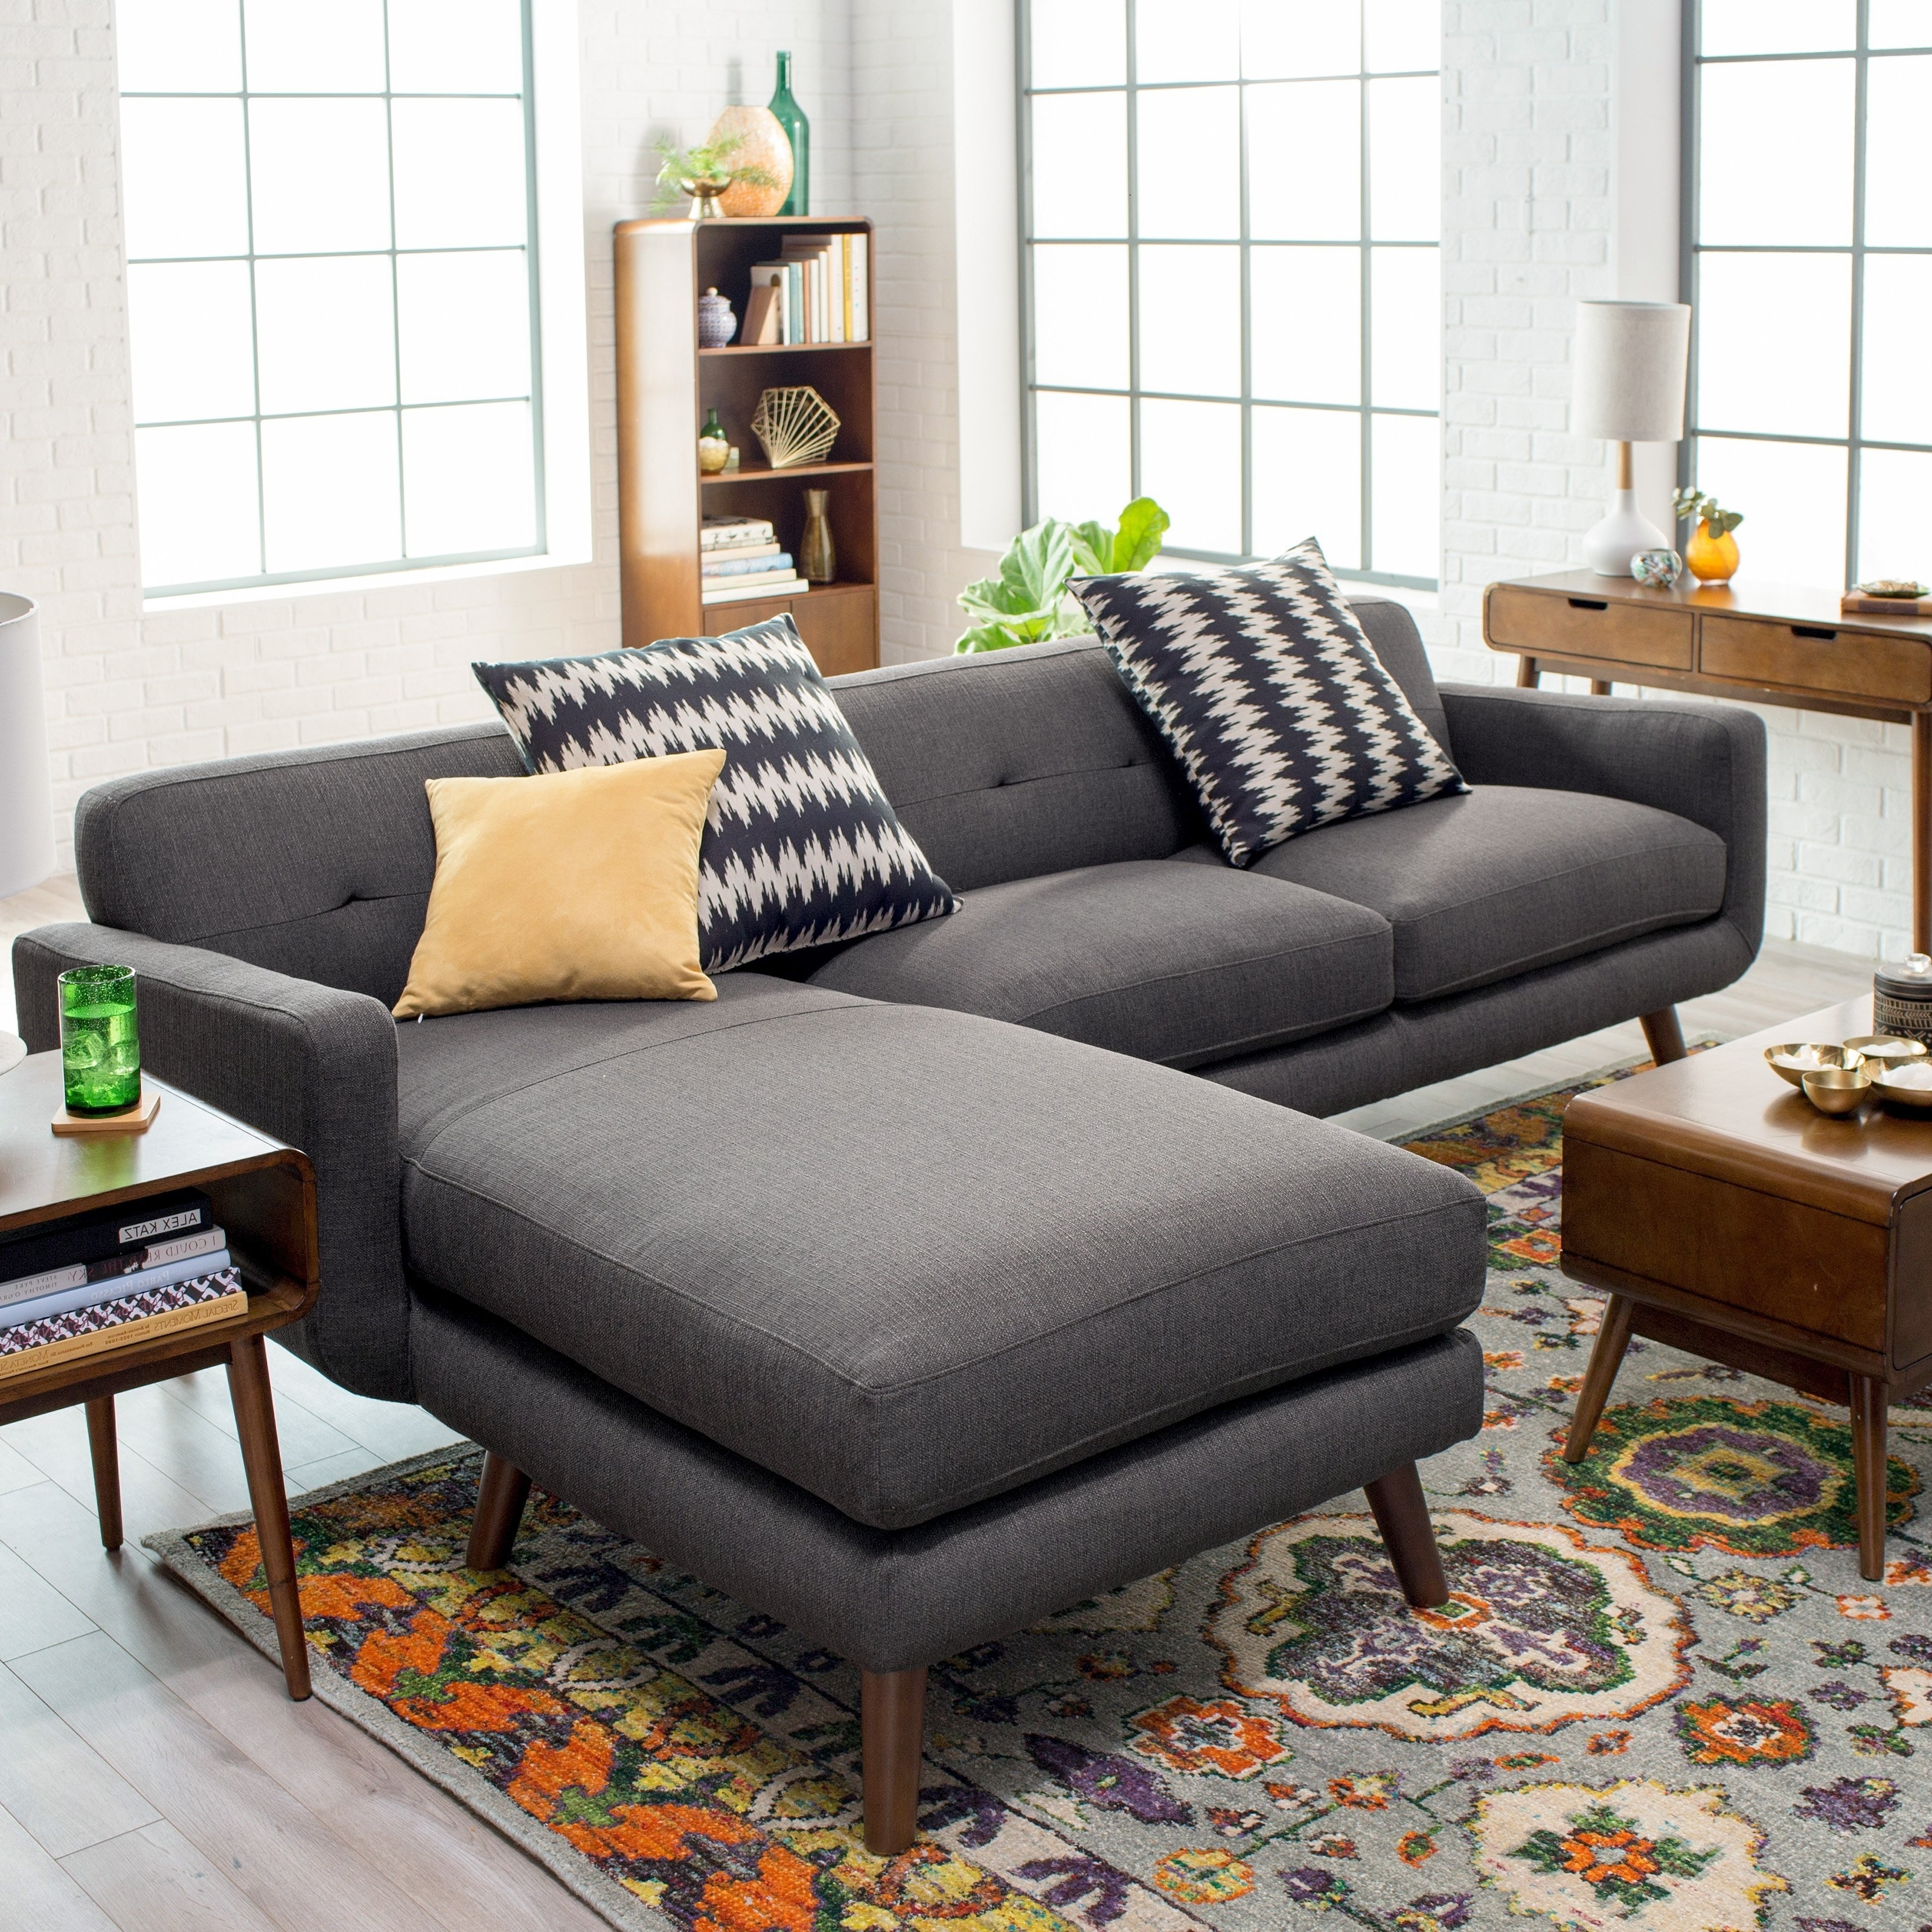 Best And Newest Kitchener Sectional Sofas With Living Room Furniture : Outdoor Sectional Sofa Sectional Sofas (View 1 of 20)